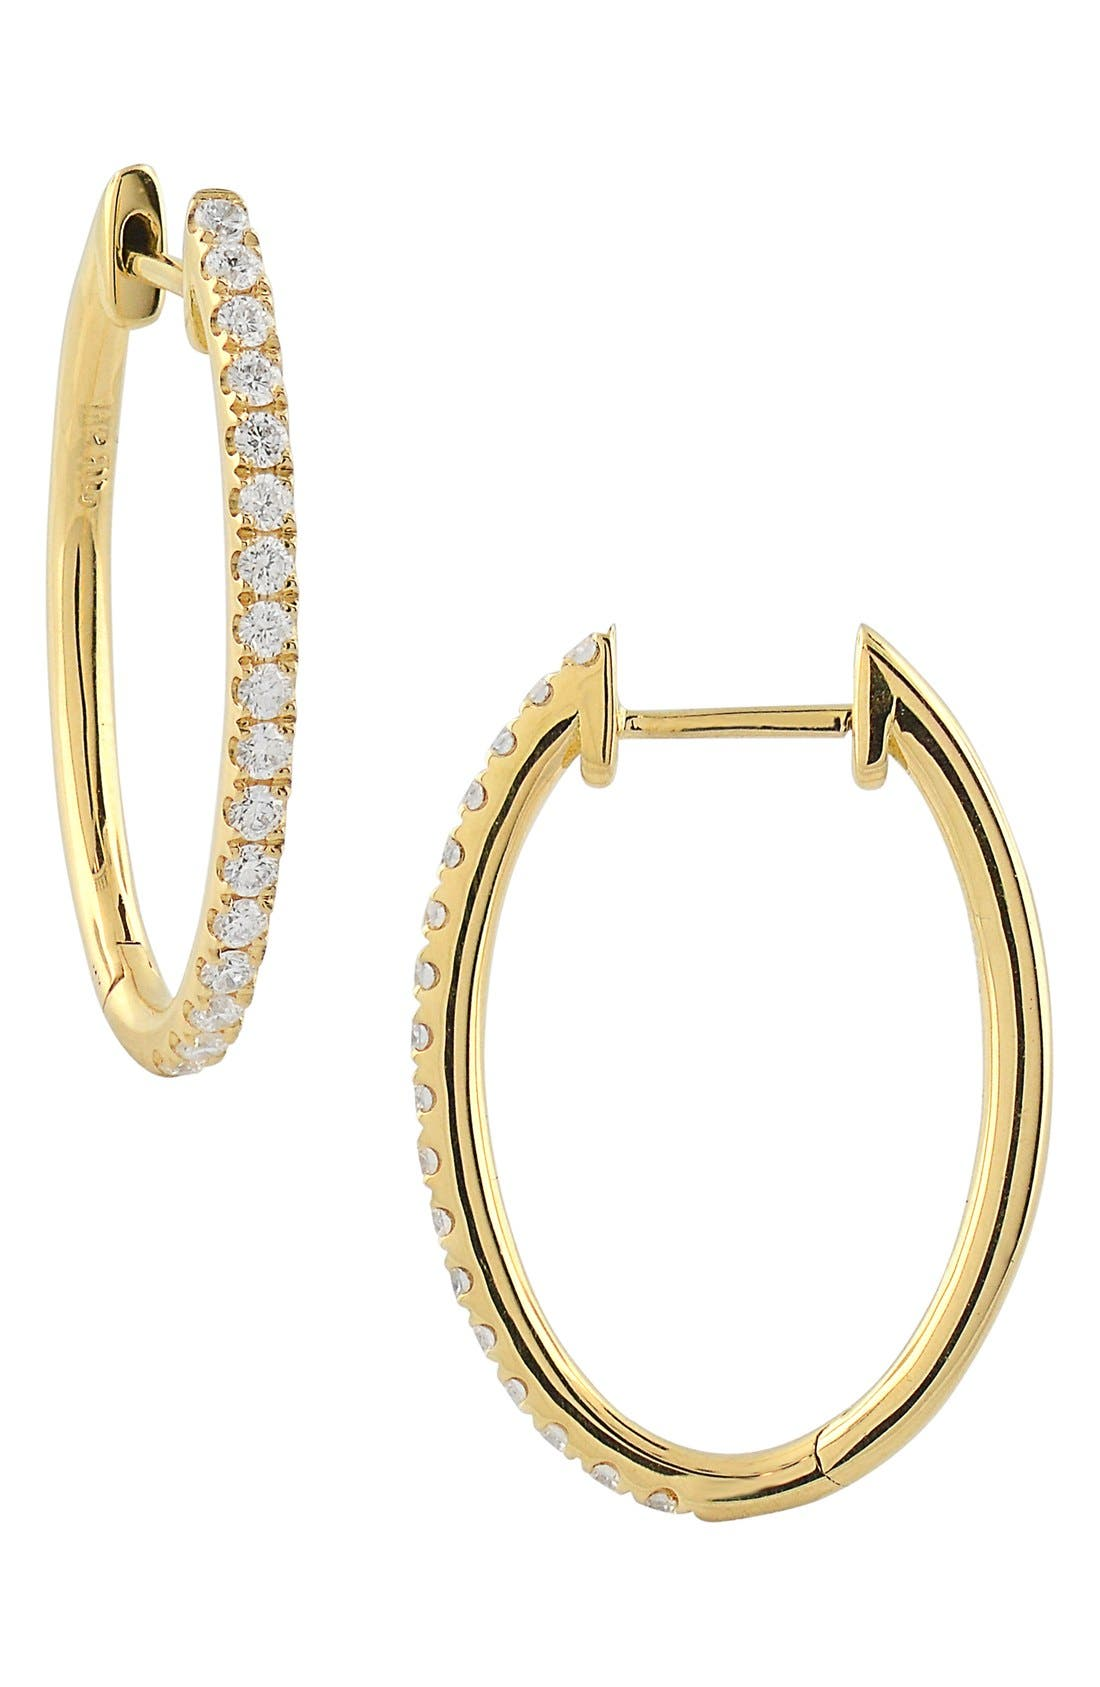 Oval Hoop Diamond Earrings,                         Main,                         color, Yellow Gold